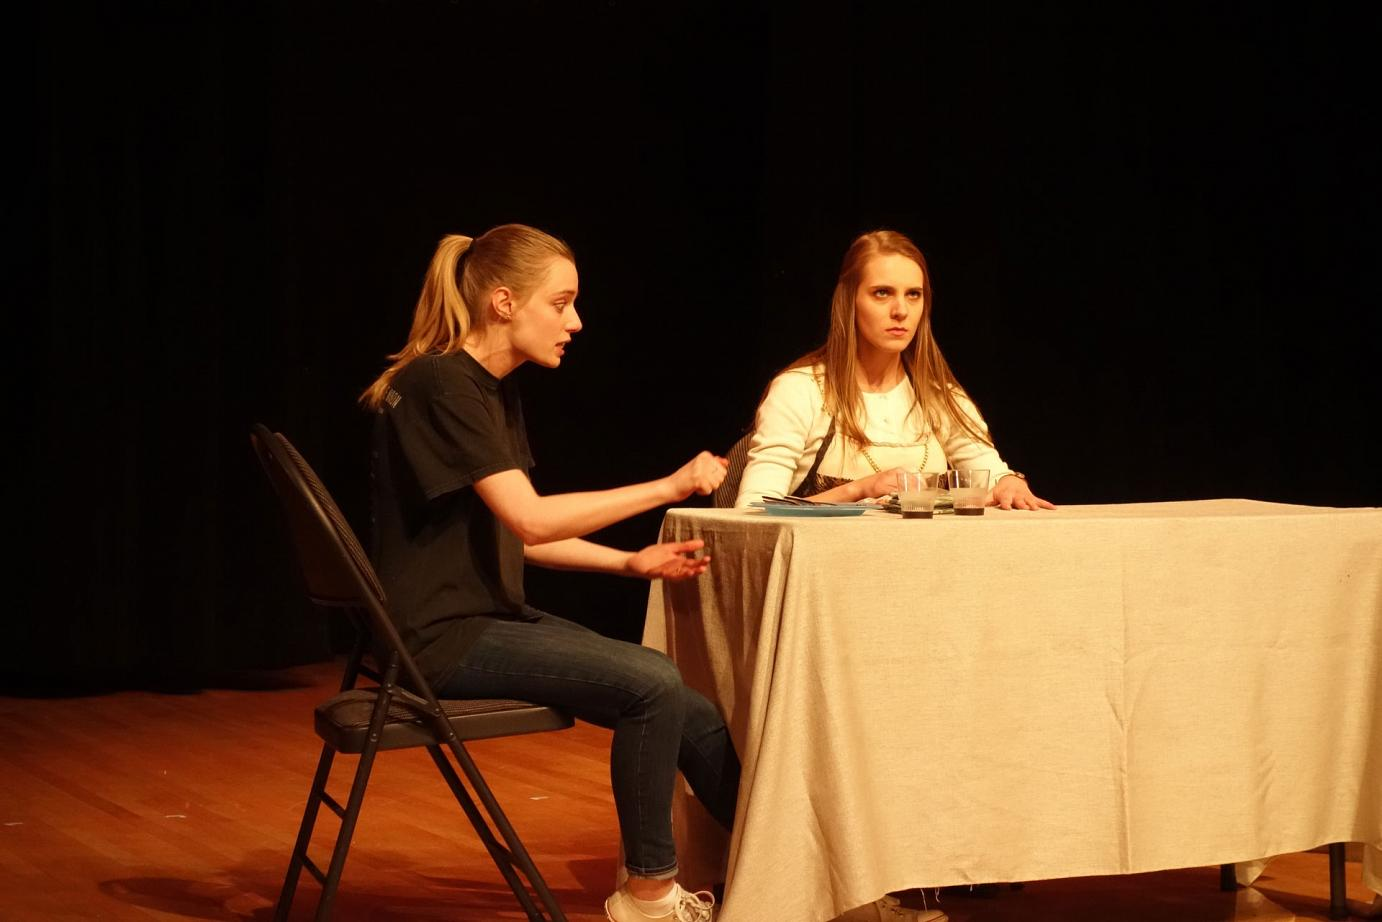 The Odd Couple (female version) by Neil Simon, performed by Alumni Celia Beketa and Anja Savcic